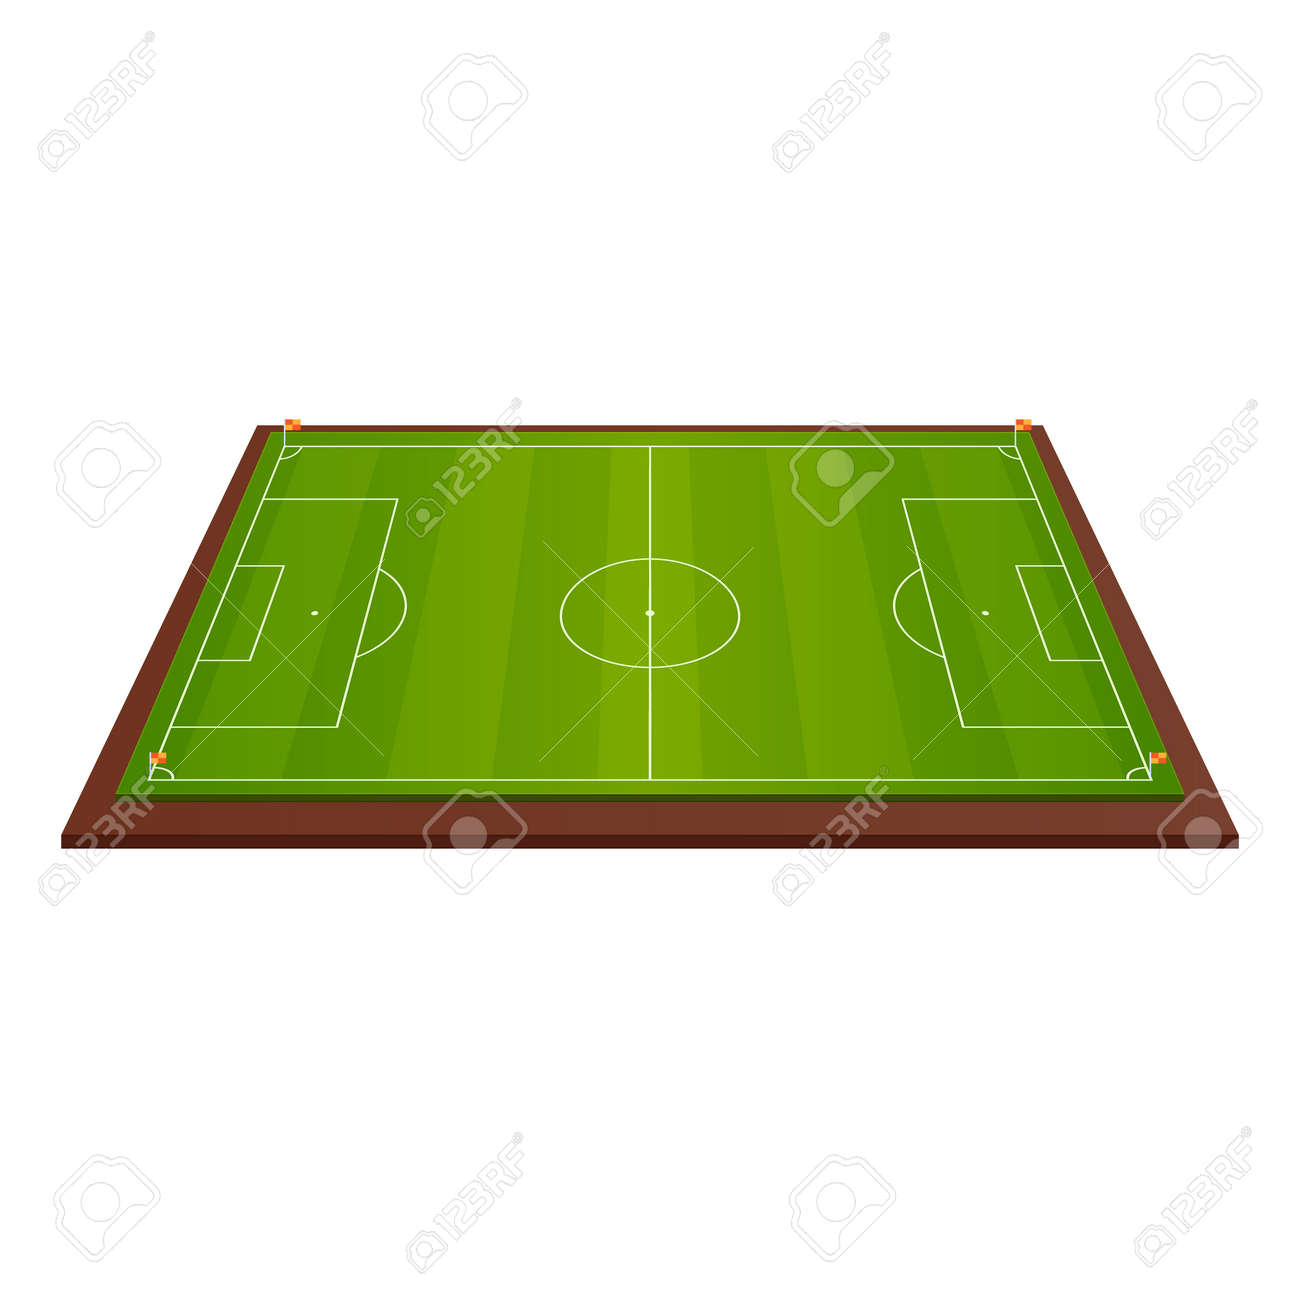 Realistic Football Field Template Playground With Green Grass